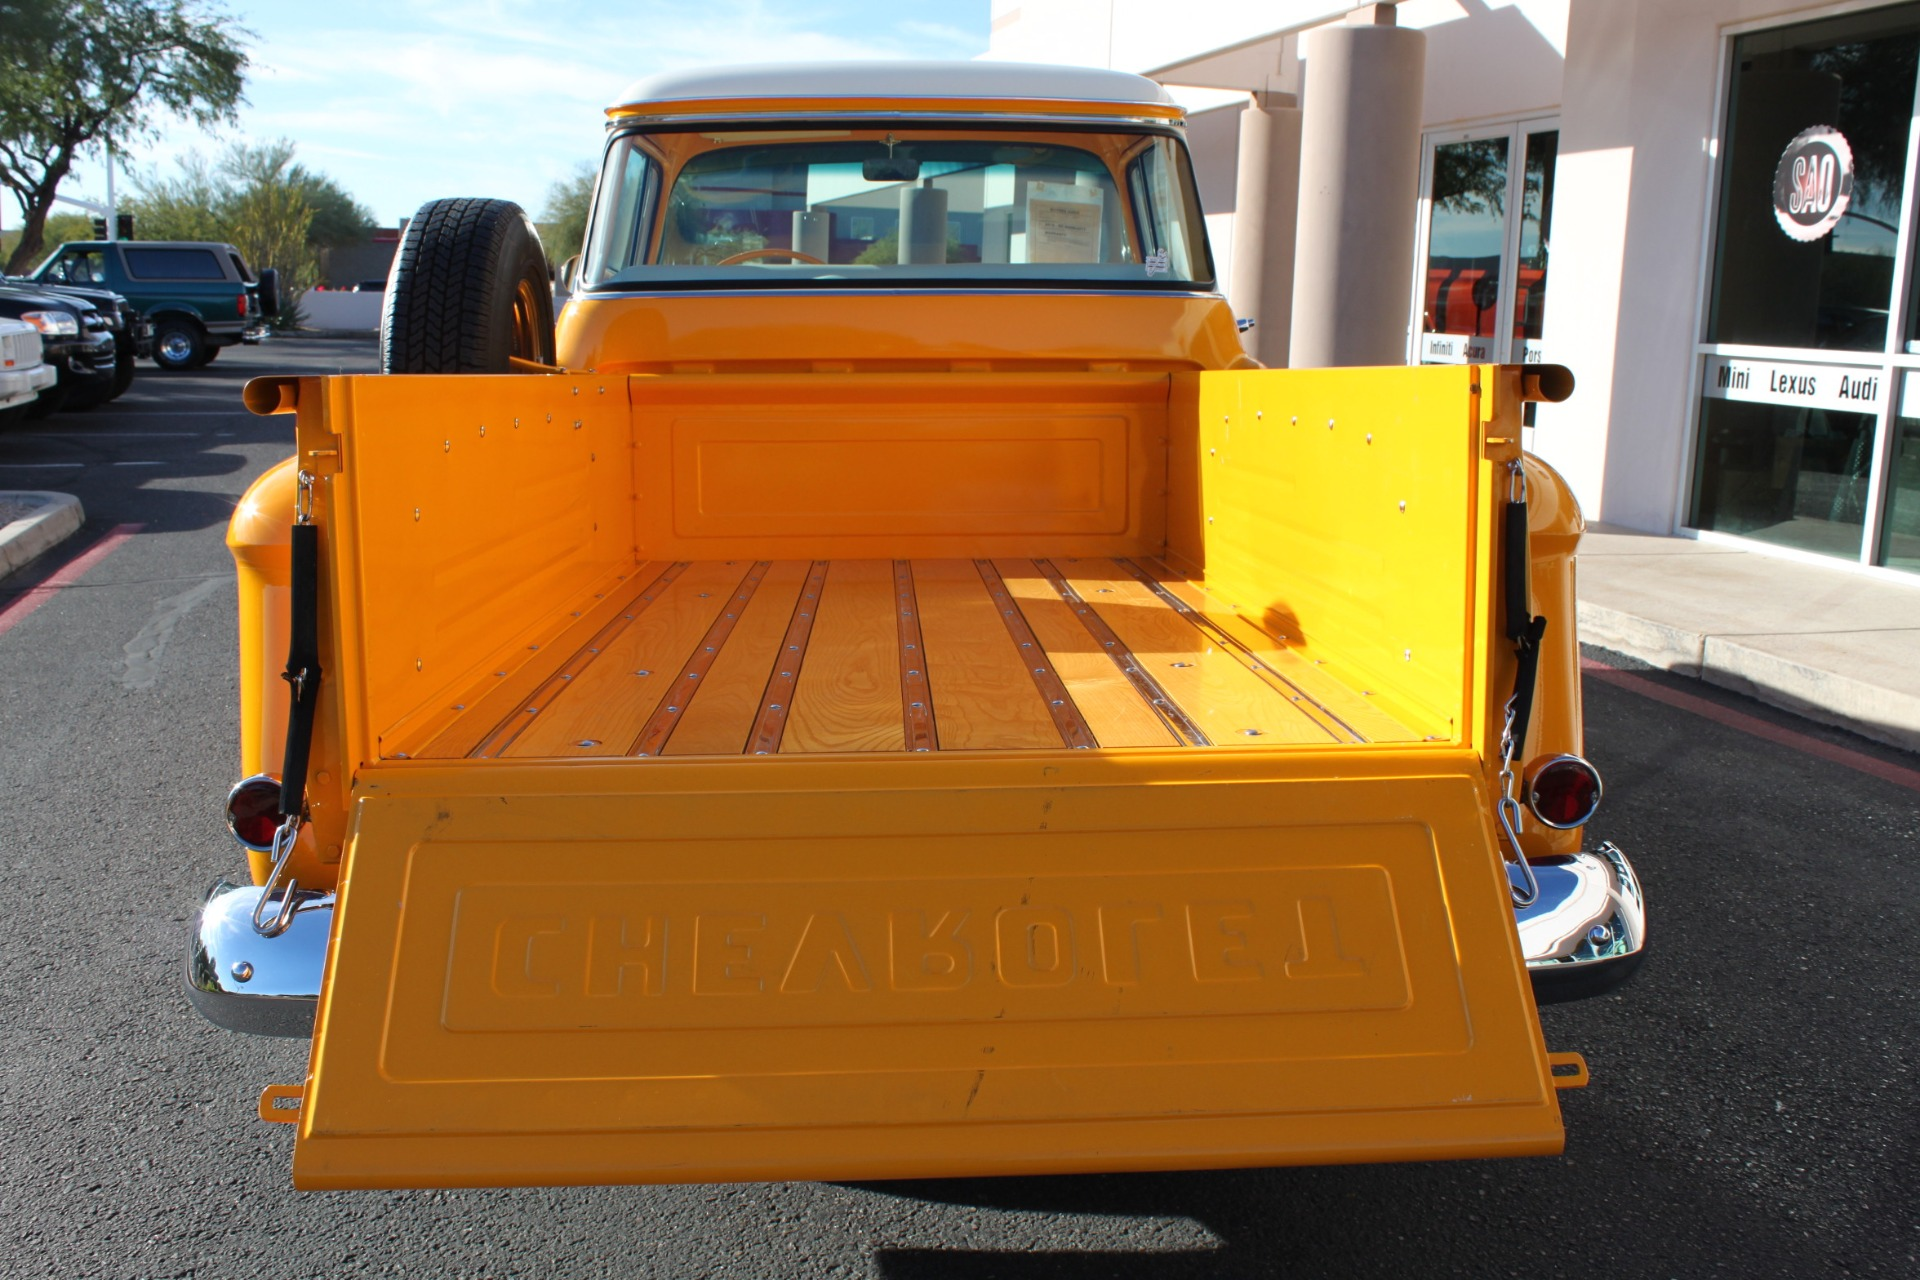 Used-1955-Chevrolet-3100-Pickup-Truck-Honda